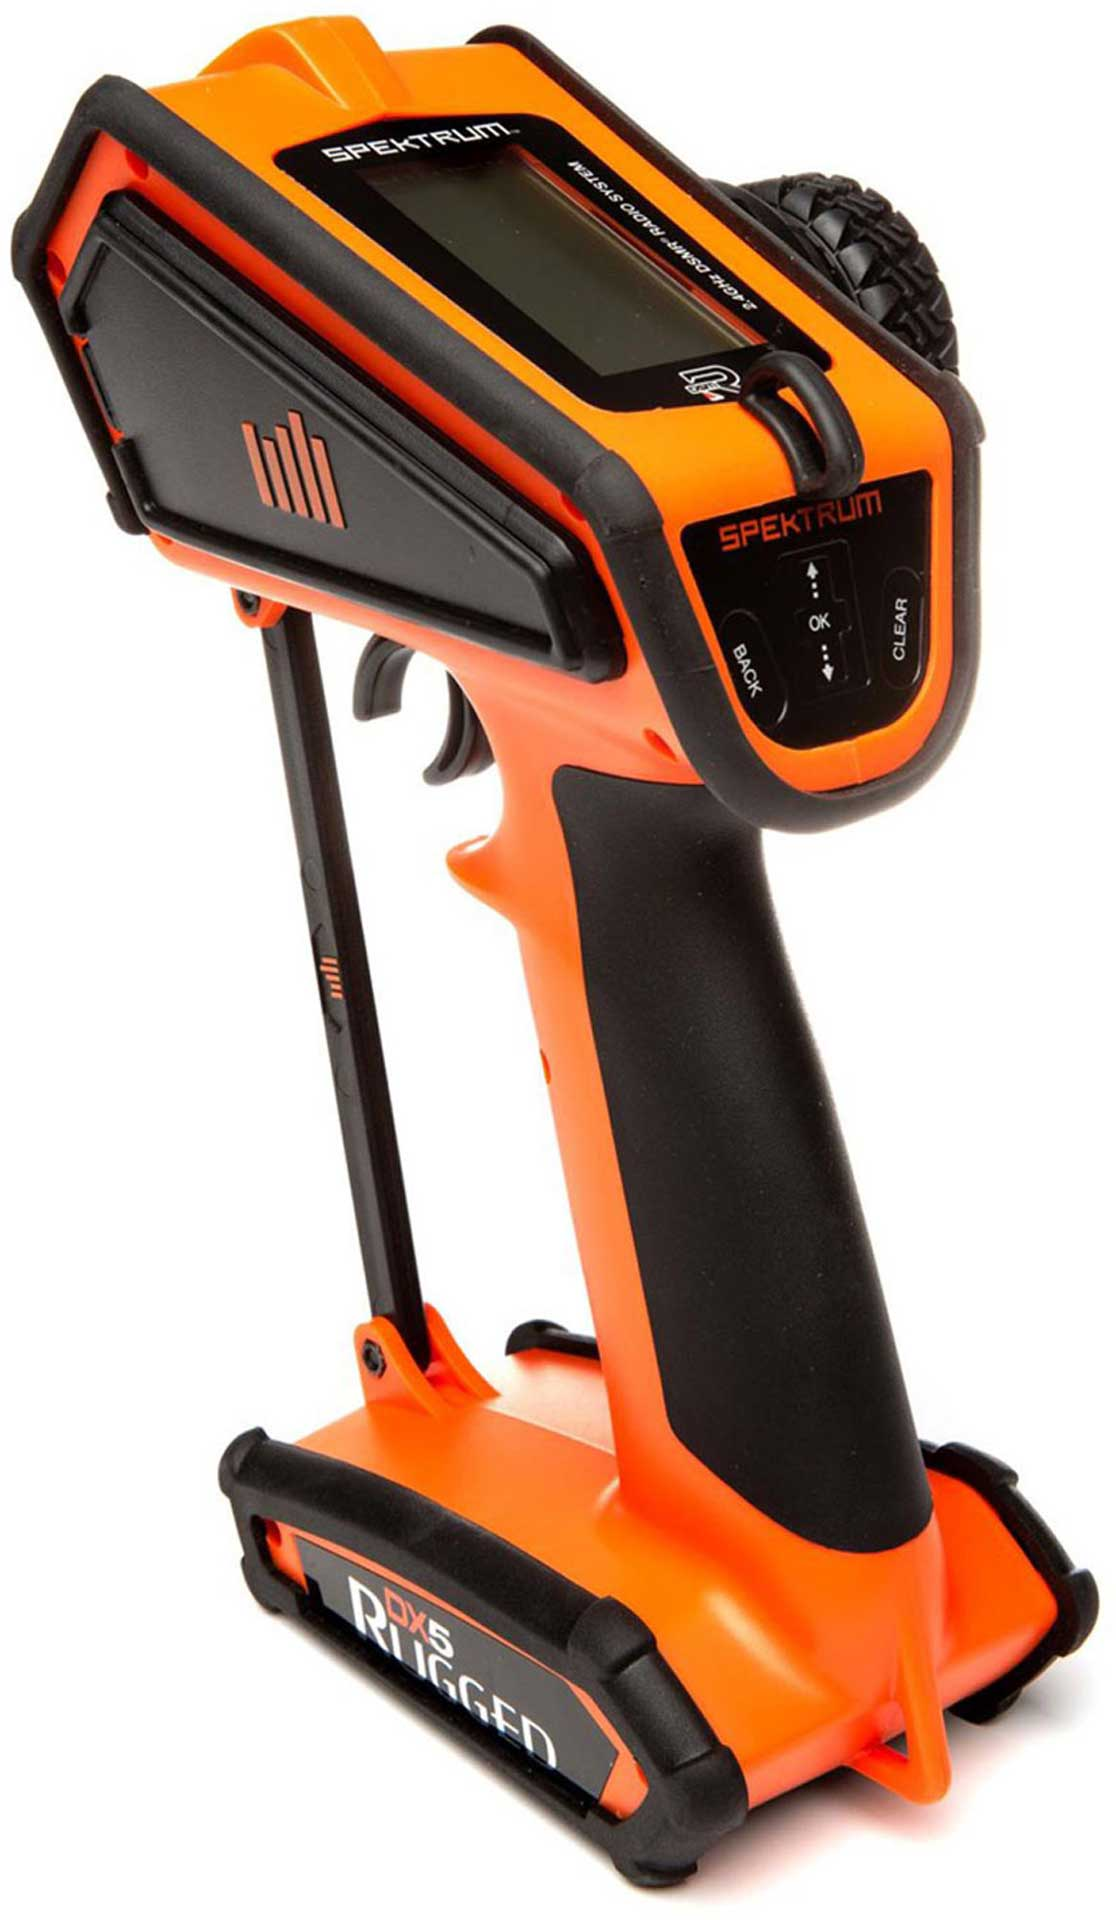 SPEKTRUM DX5 RUGGED DSMR TX ONLY INTL ORANGE SPECIAL EDITION